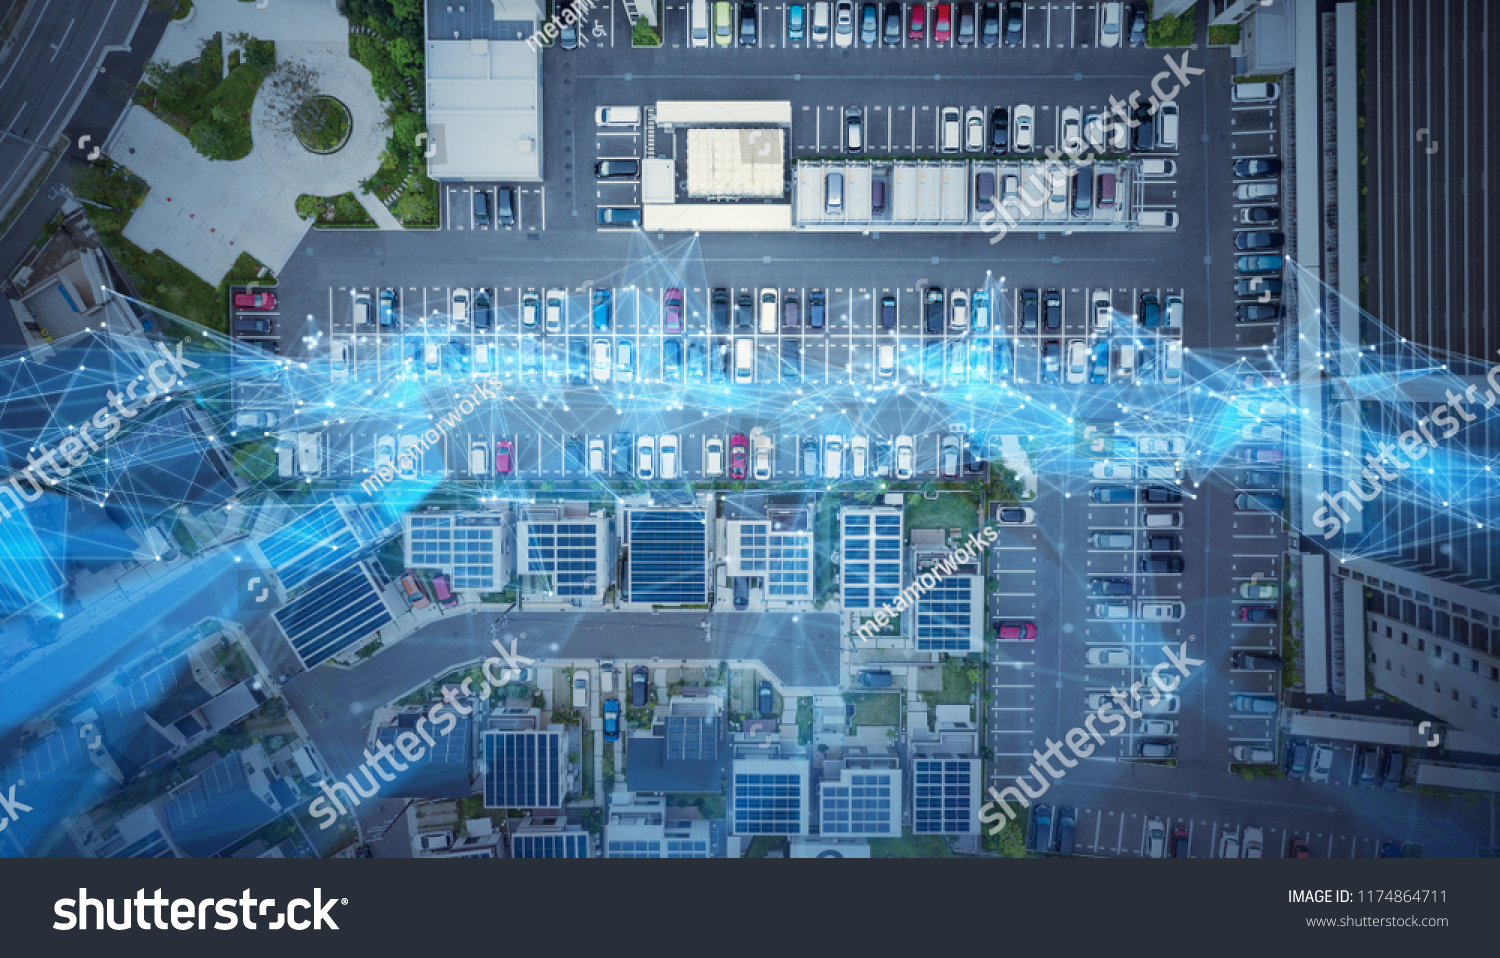 Social Infrastructure Communication Technology Concept Iotinternet Buildings Landmarks Stock Image 1174864711